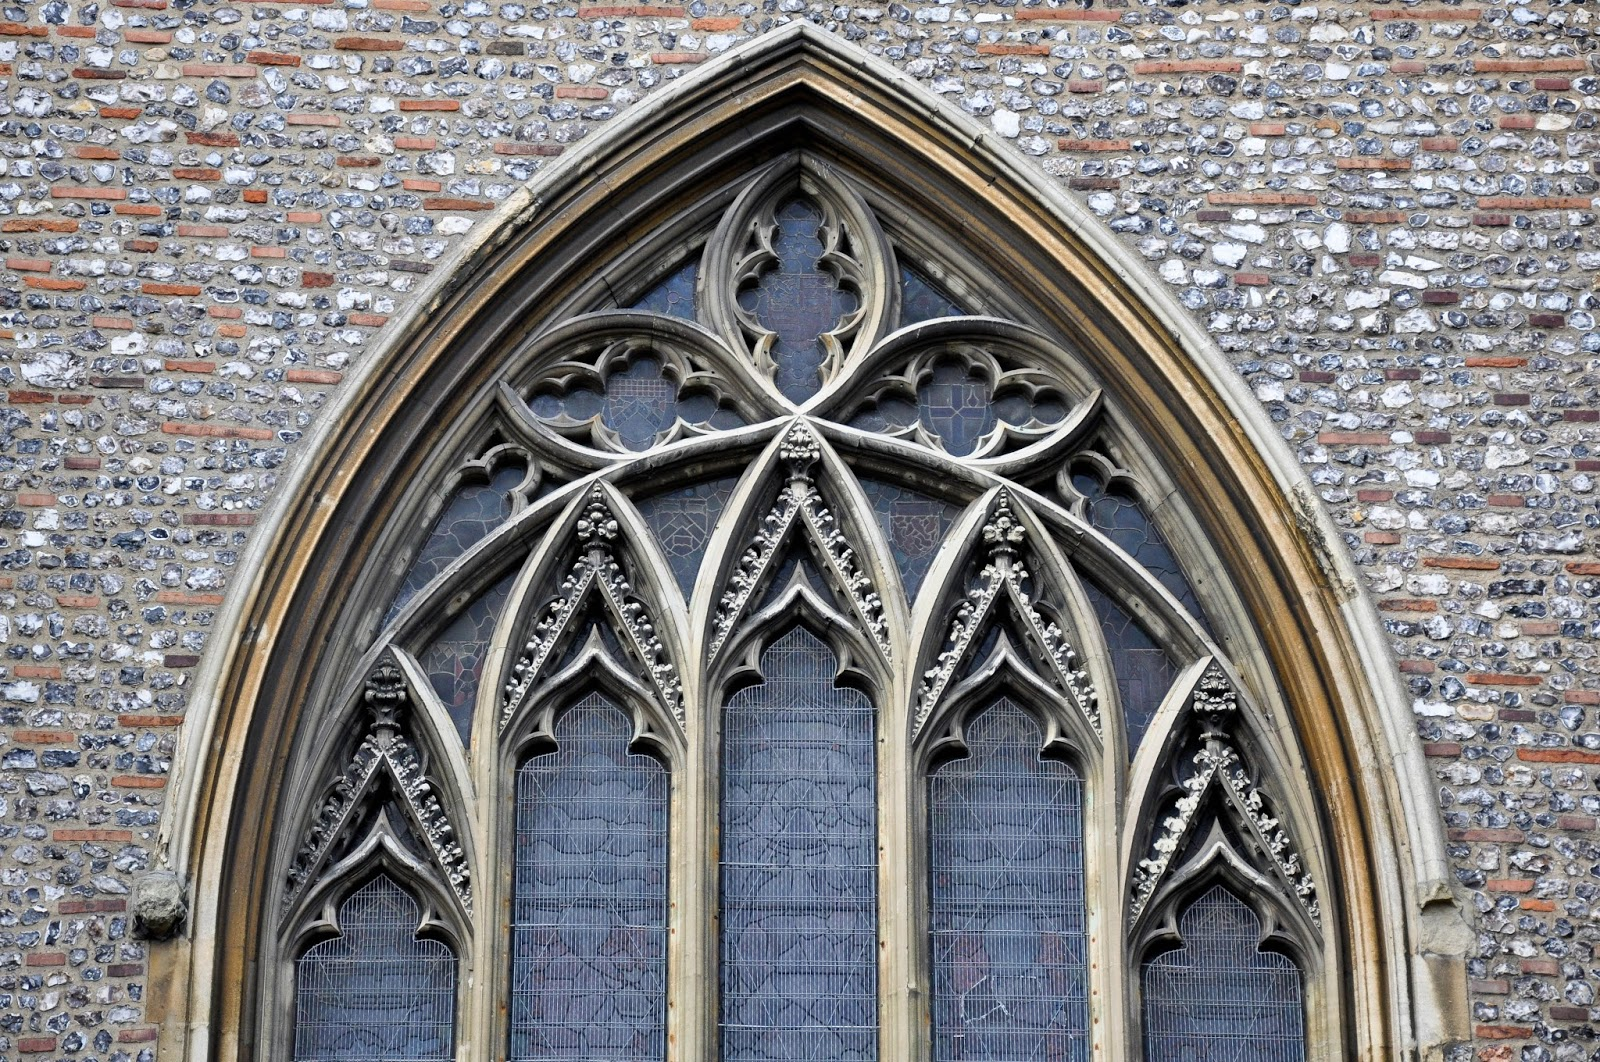 A close-up of a window, St. Albans Cathedral, England